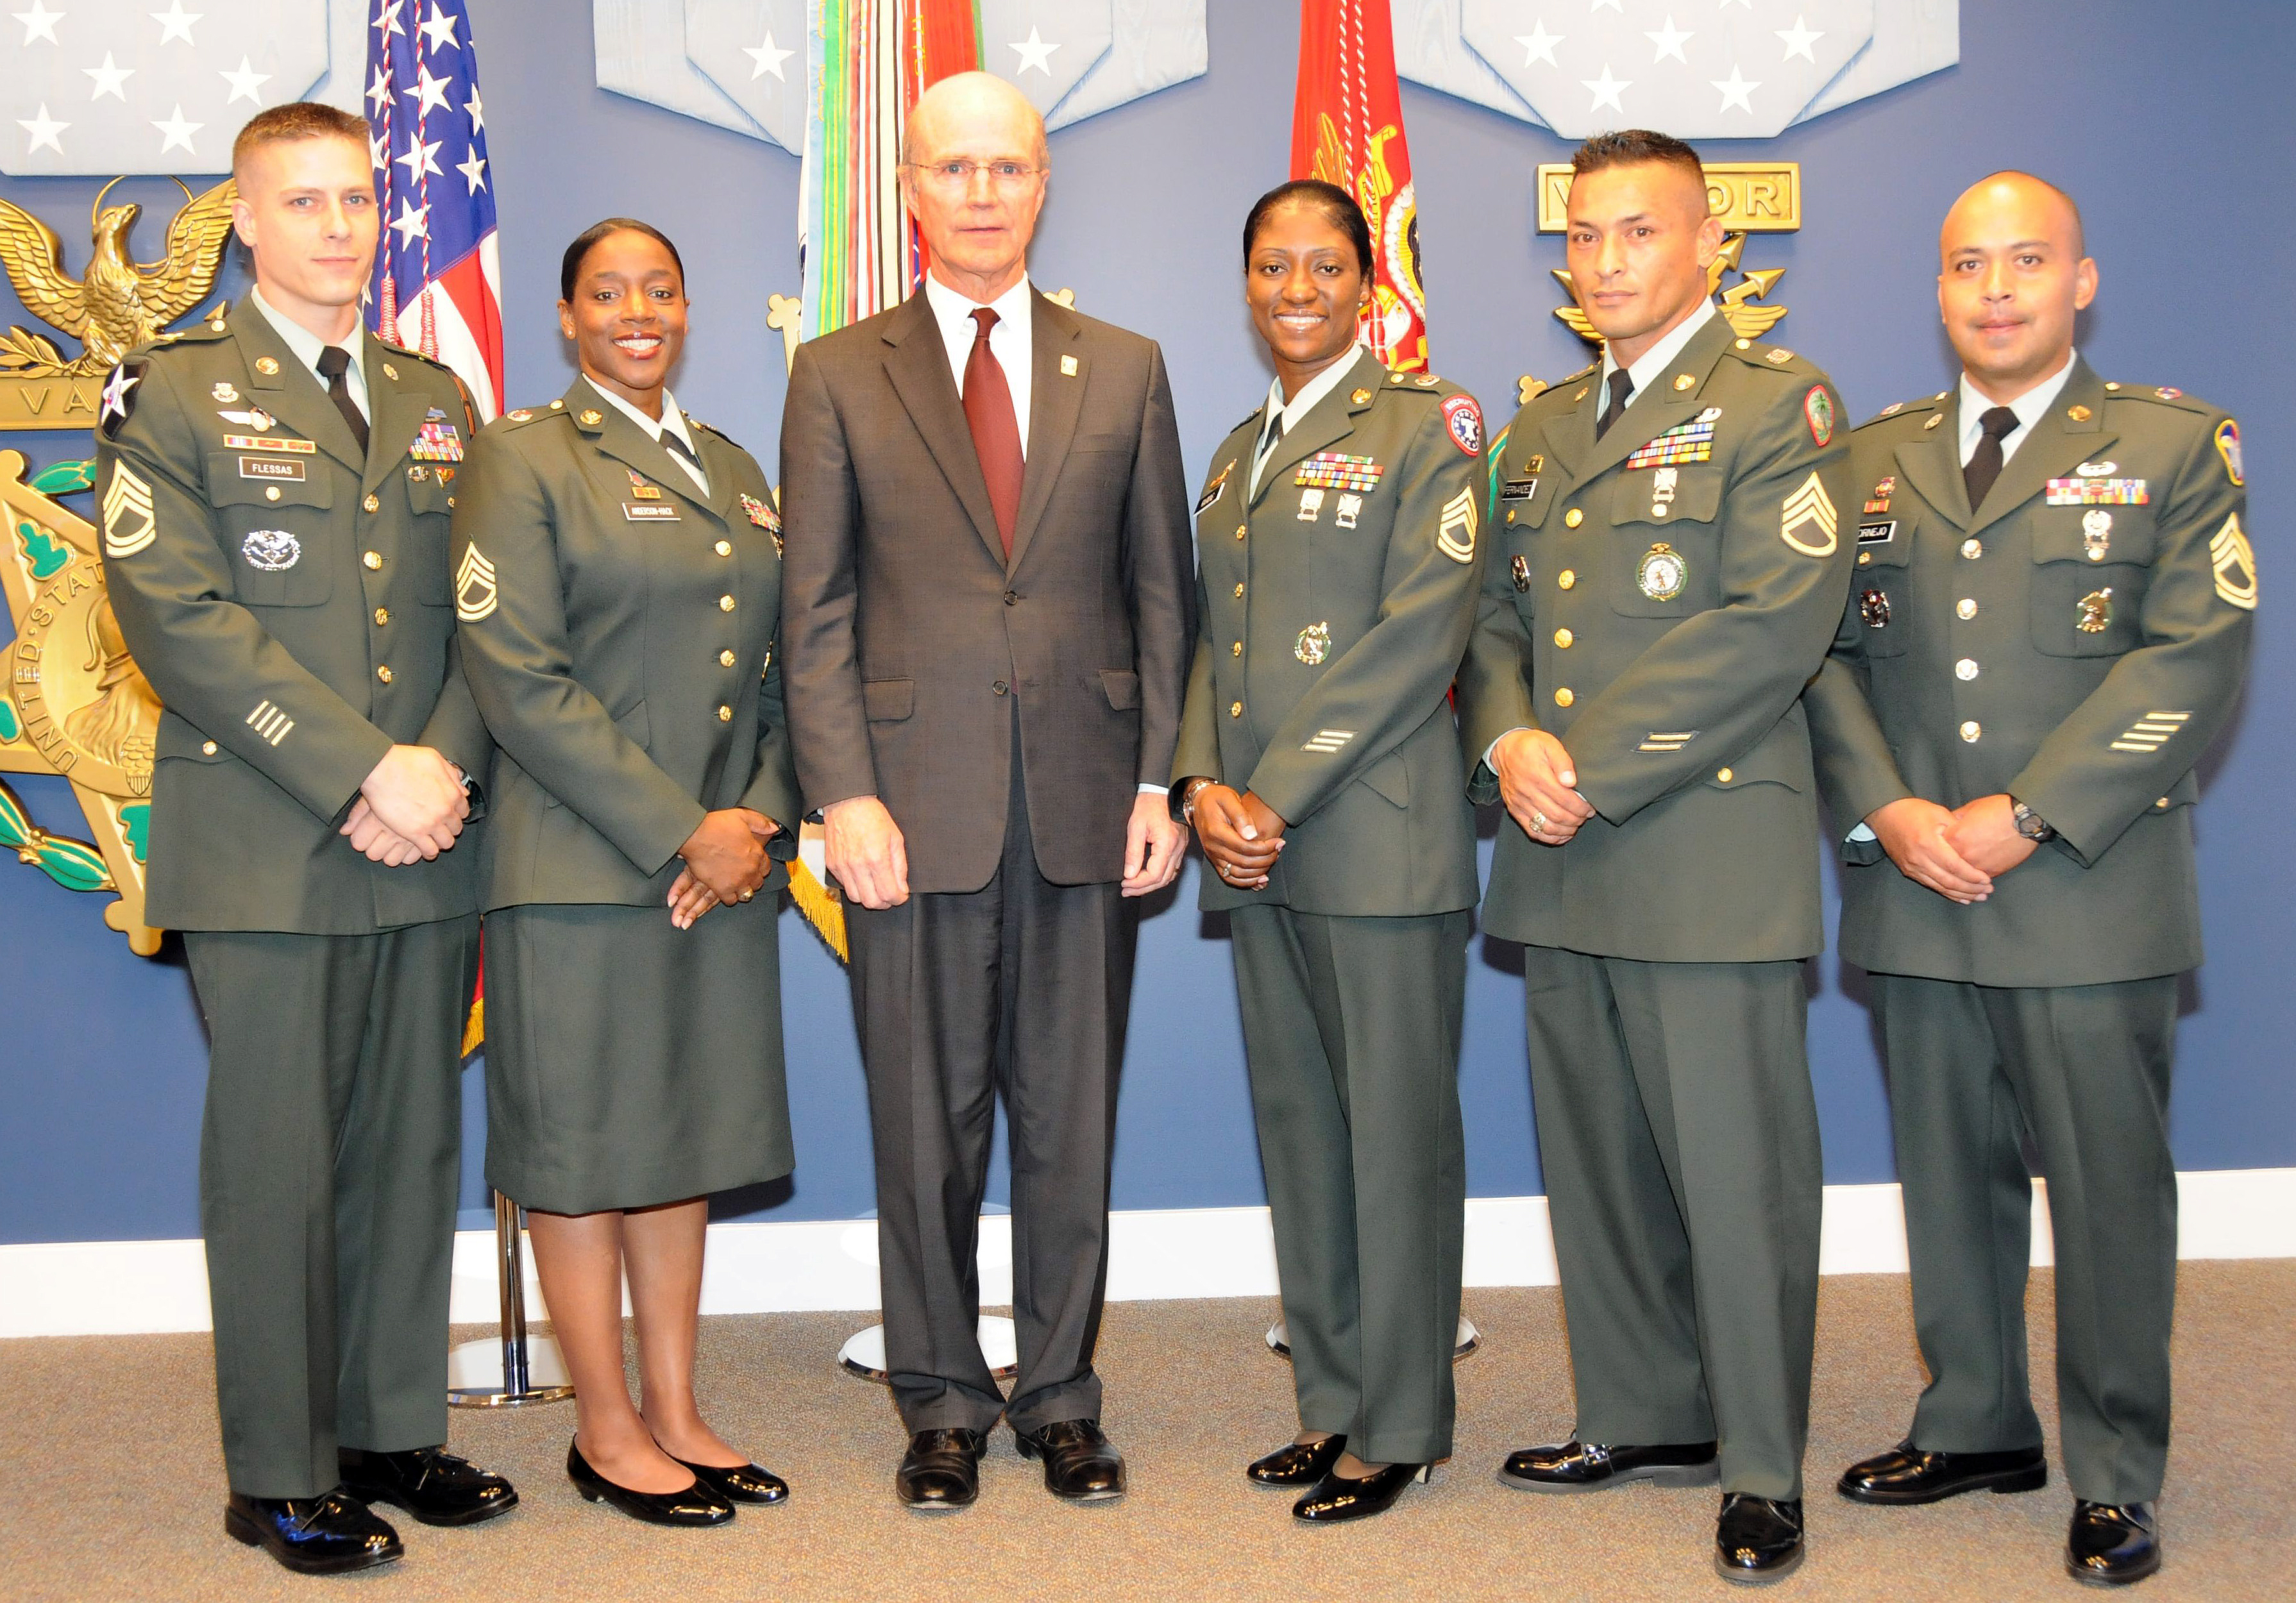 File:Flickr - The U.S. Army - Awards of excellence in ...